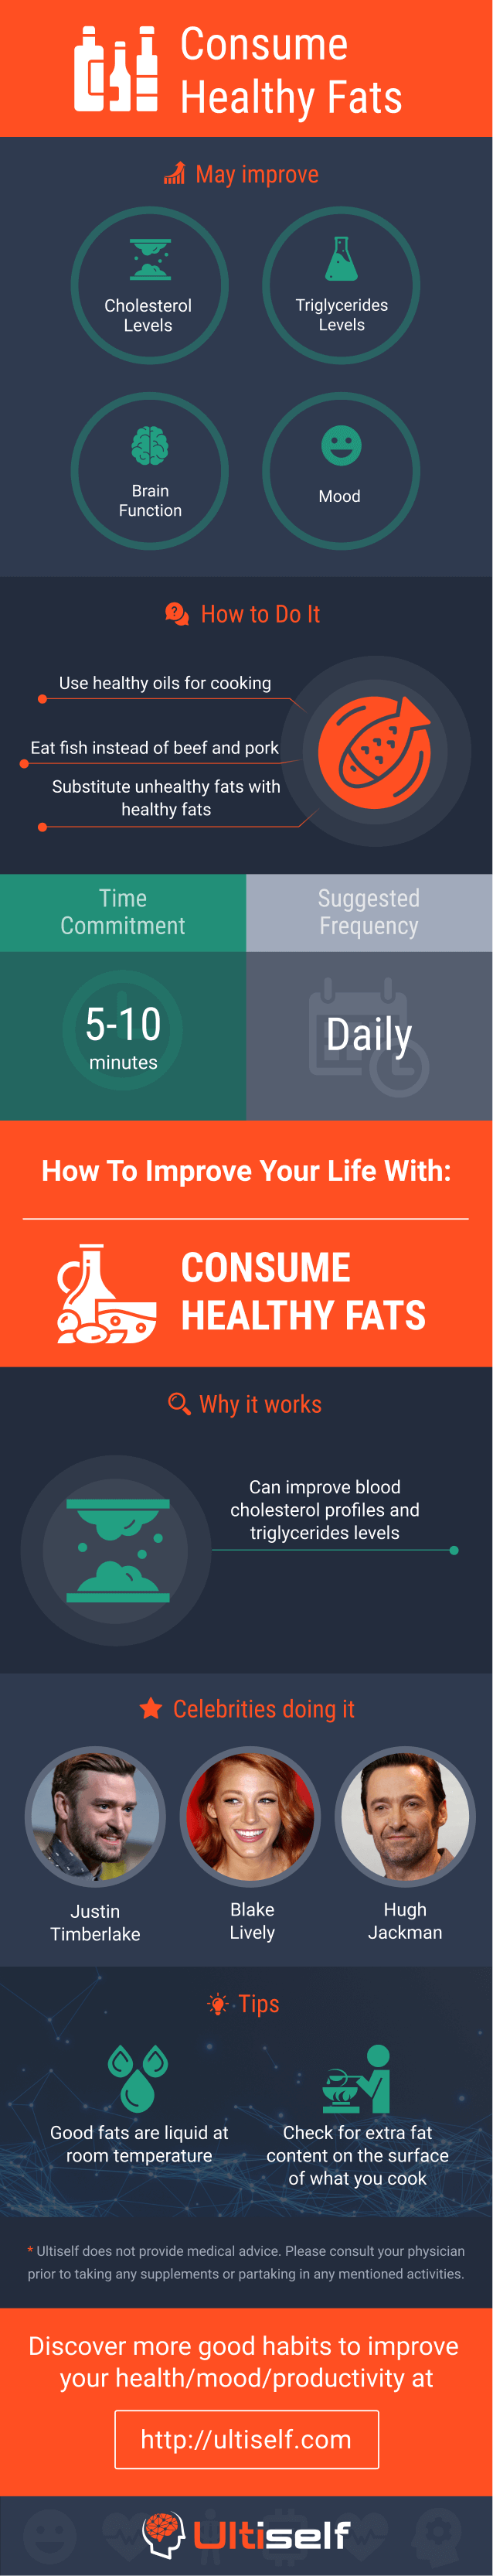 Consume Healthy Fats infographic